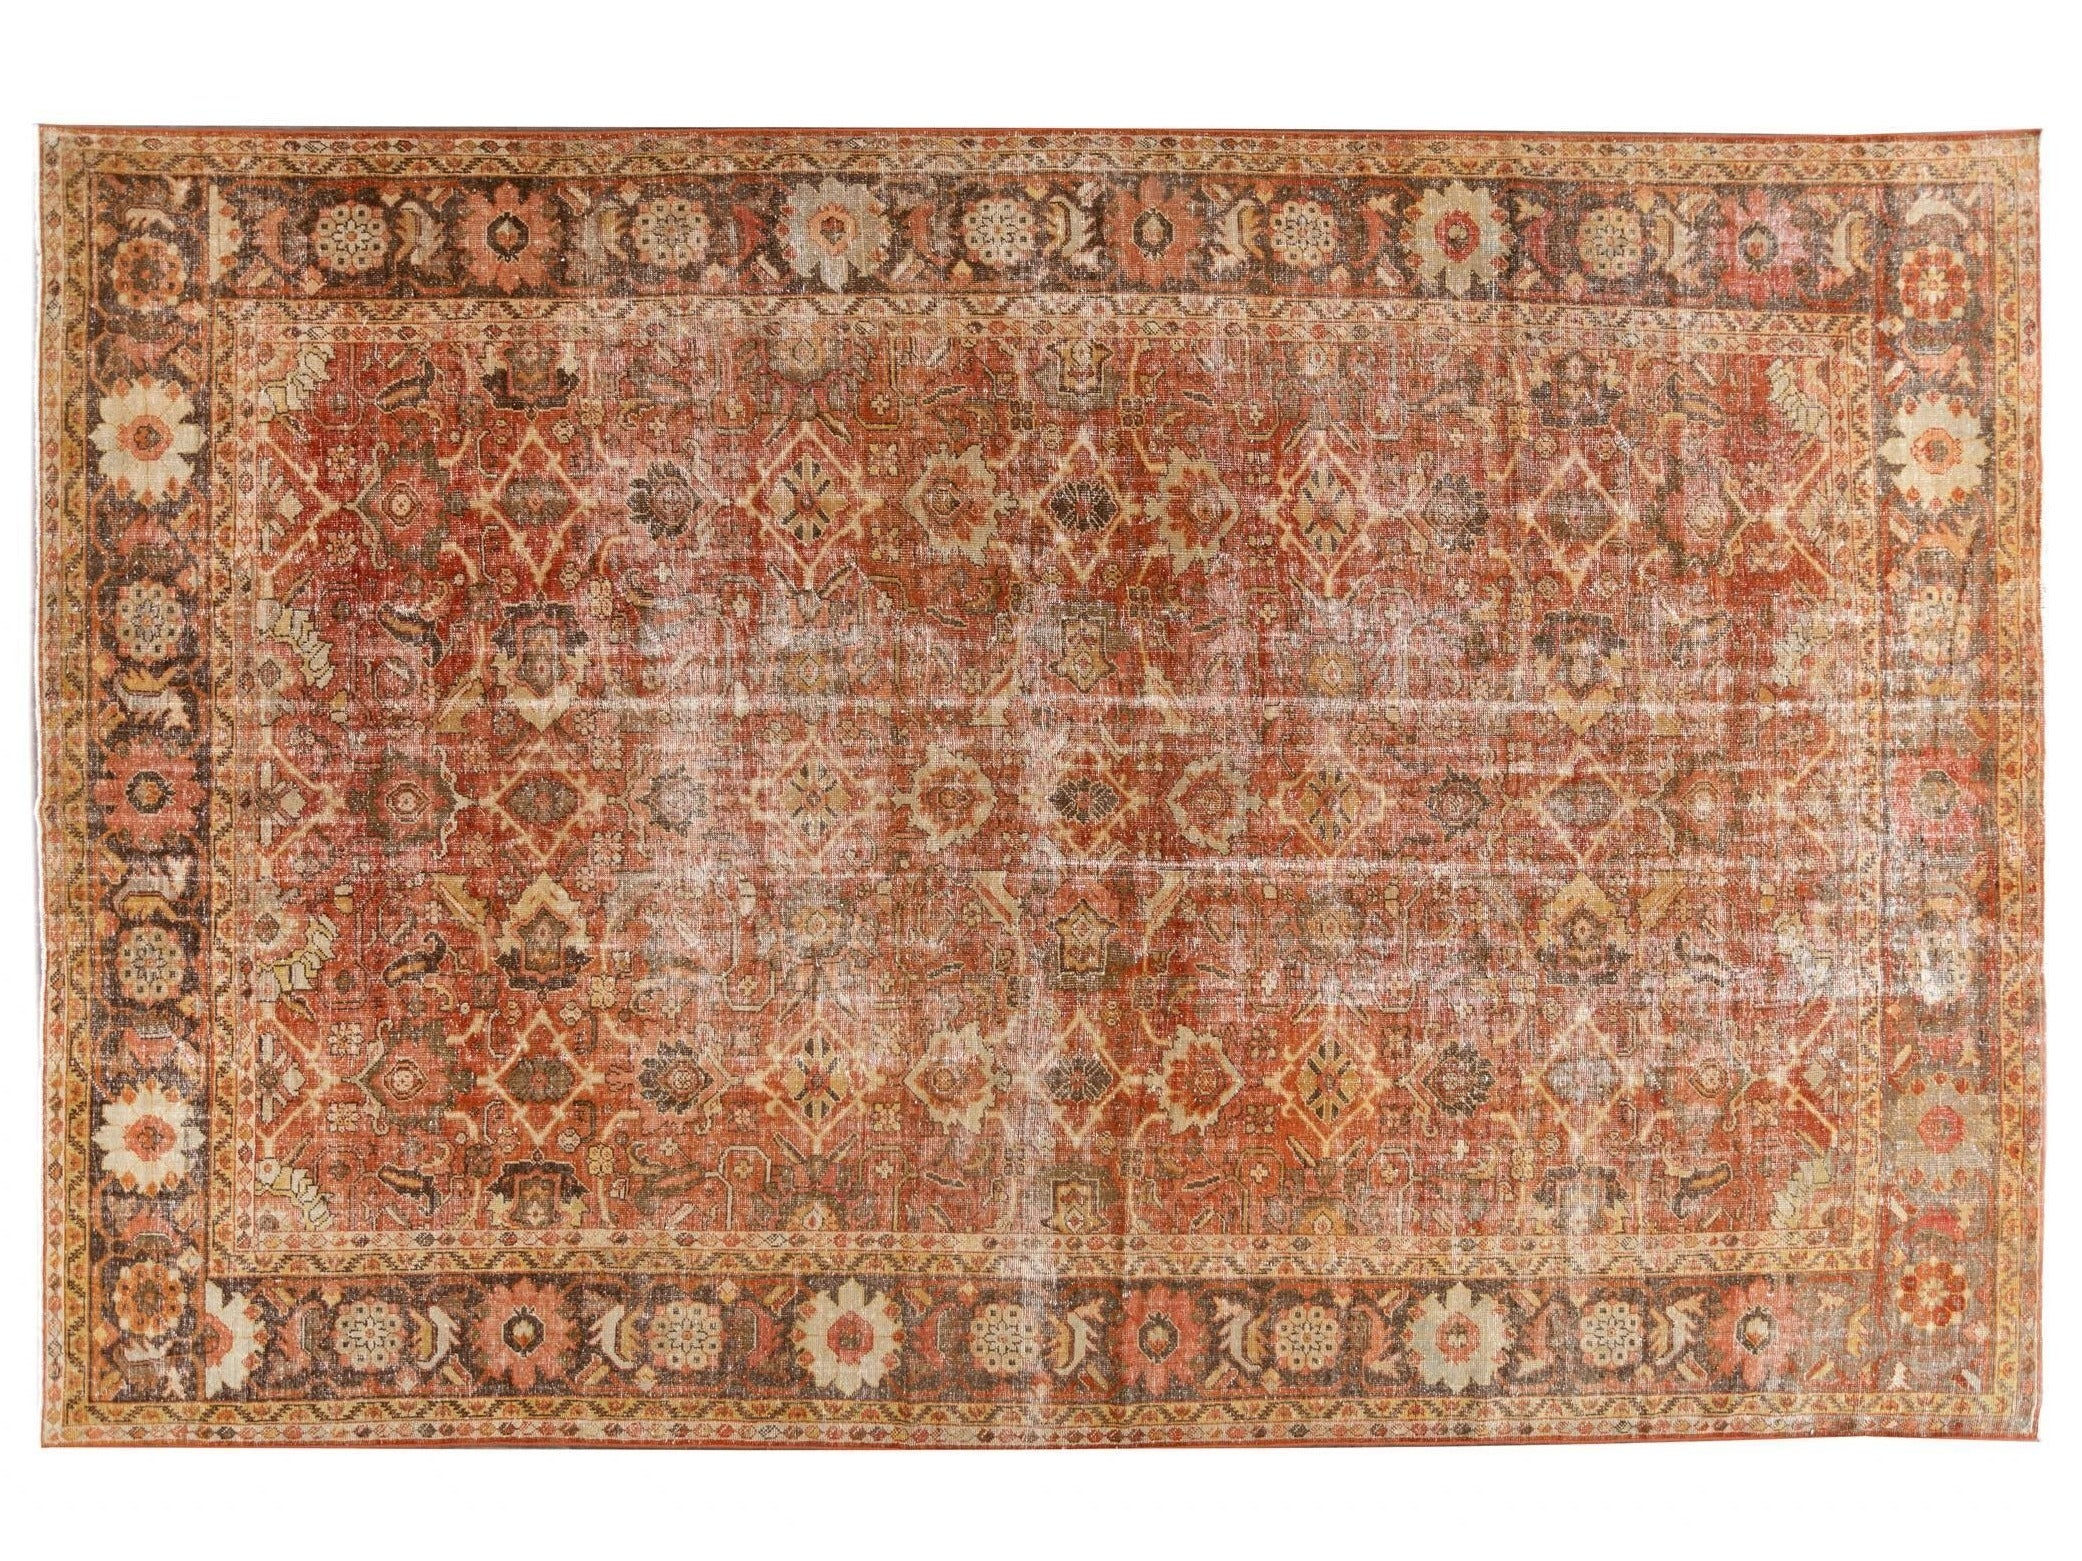 Antique Mahal Oversize Wool Rug 11 X 17